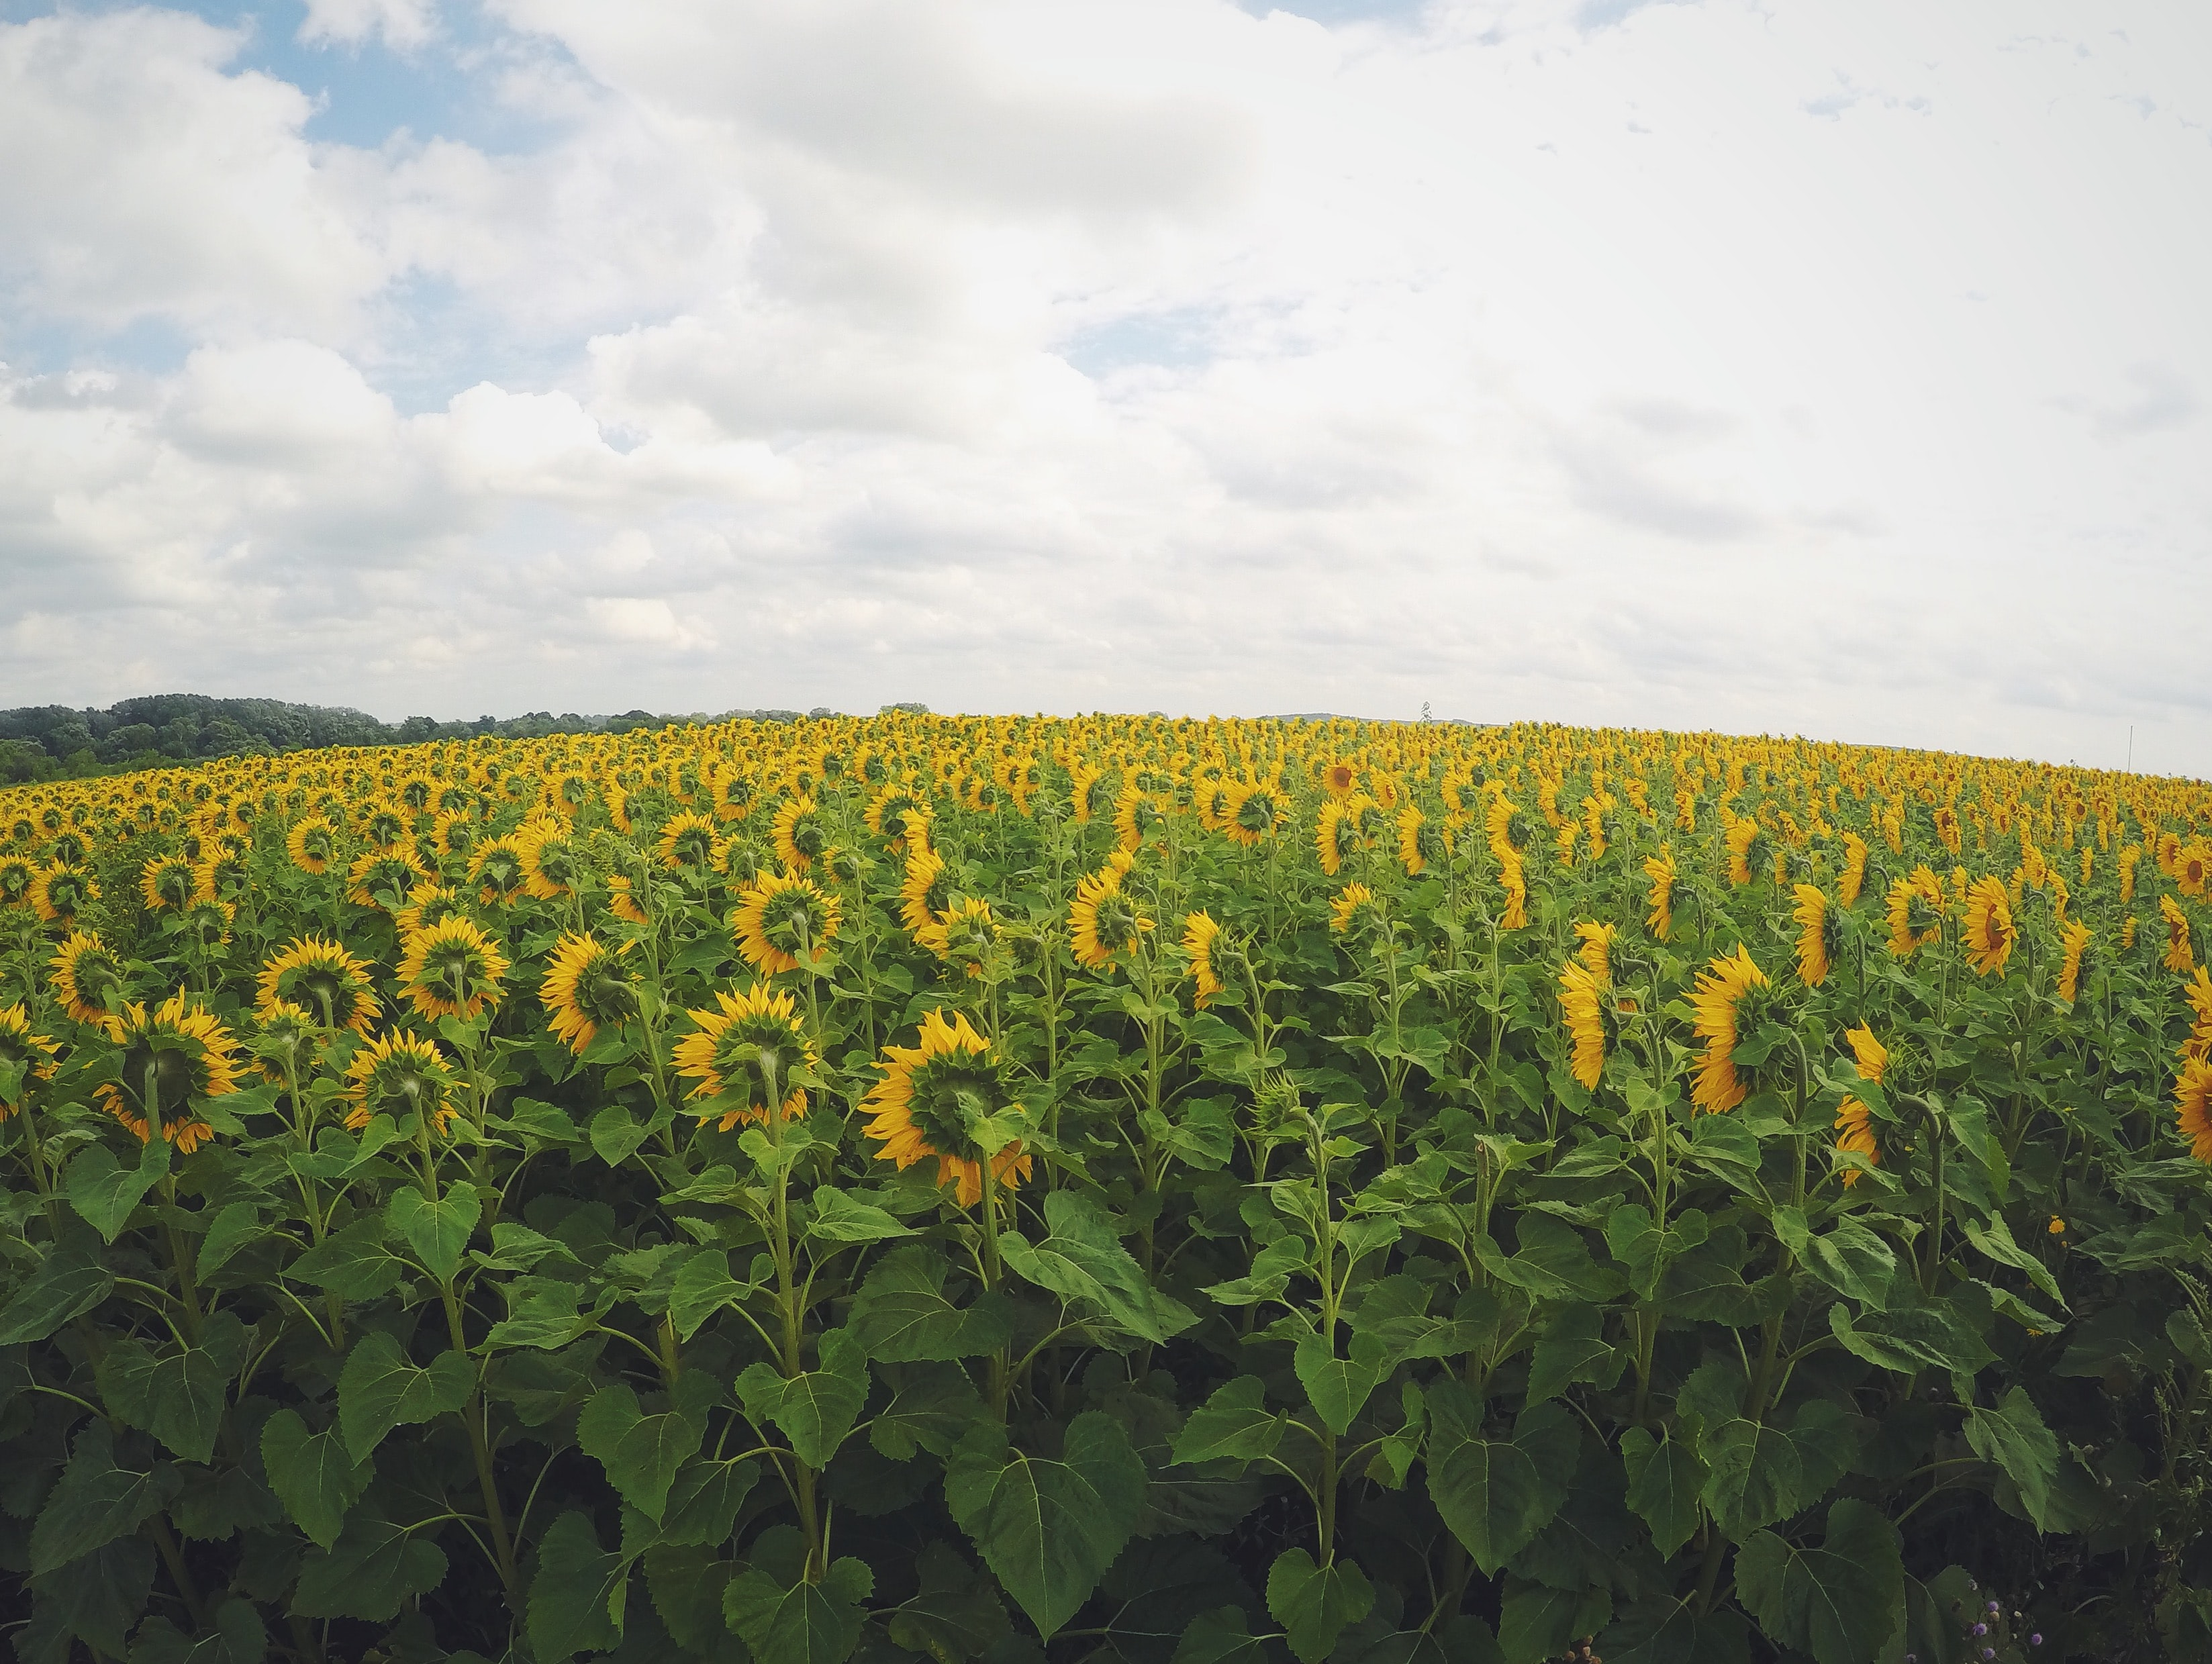 A vast field of sunflowers turning their heads towards the sun